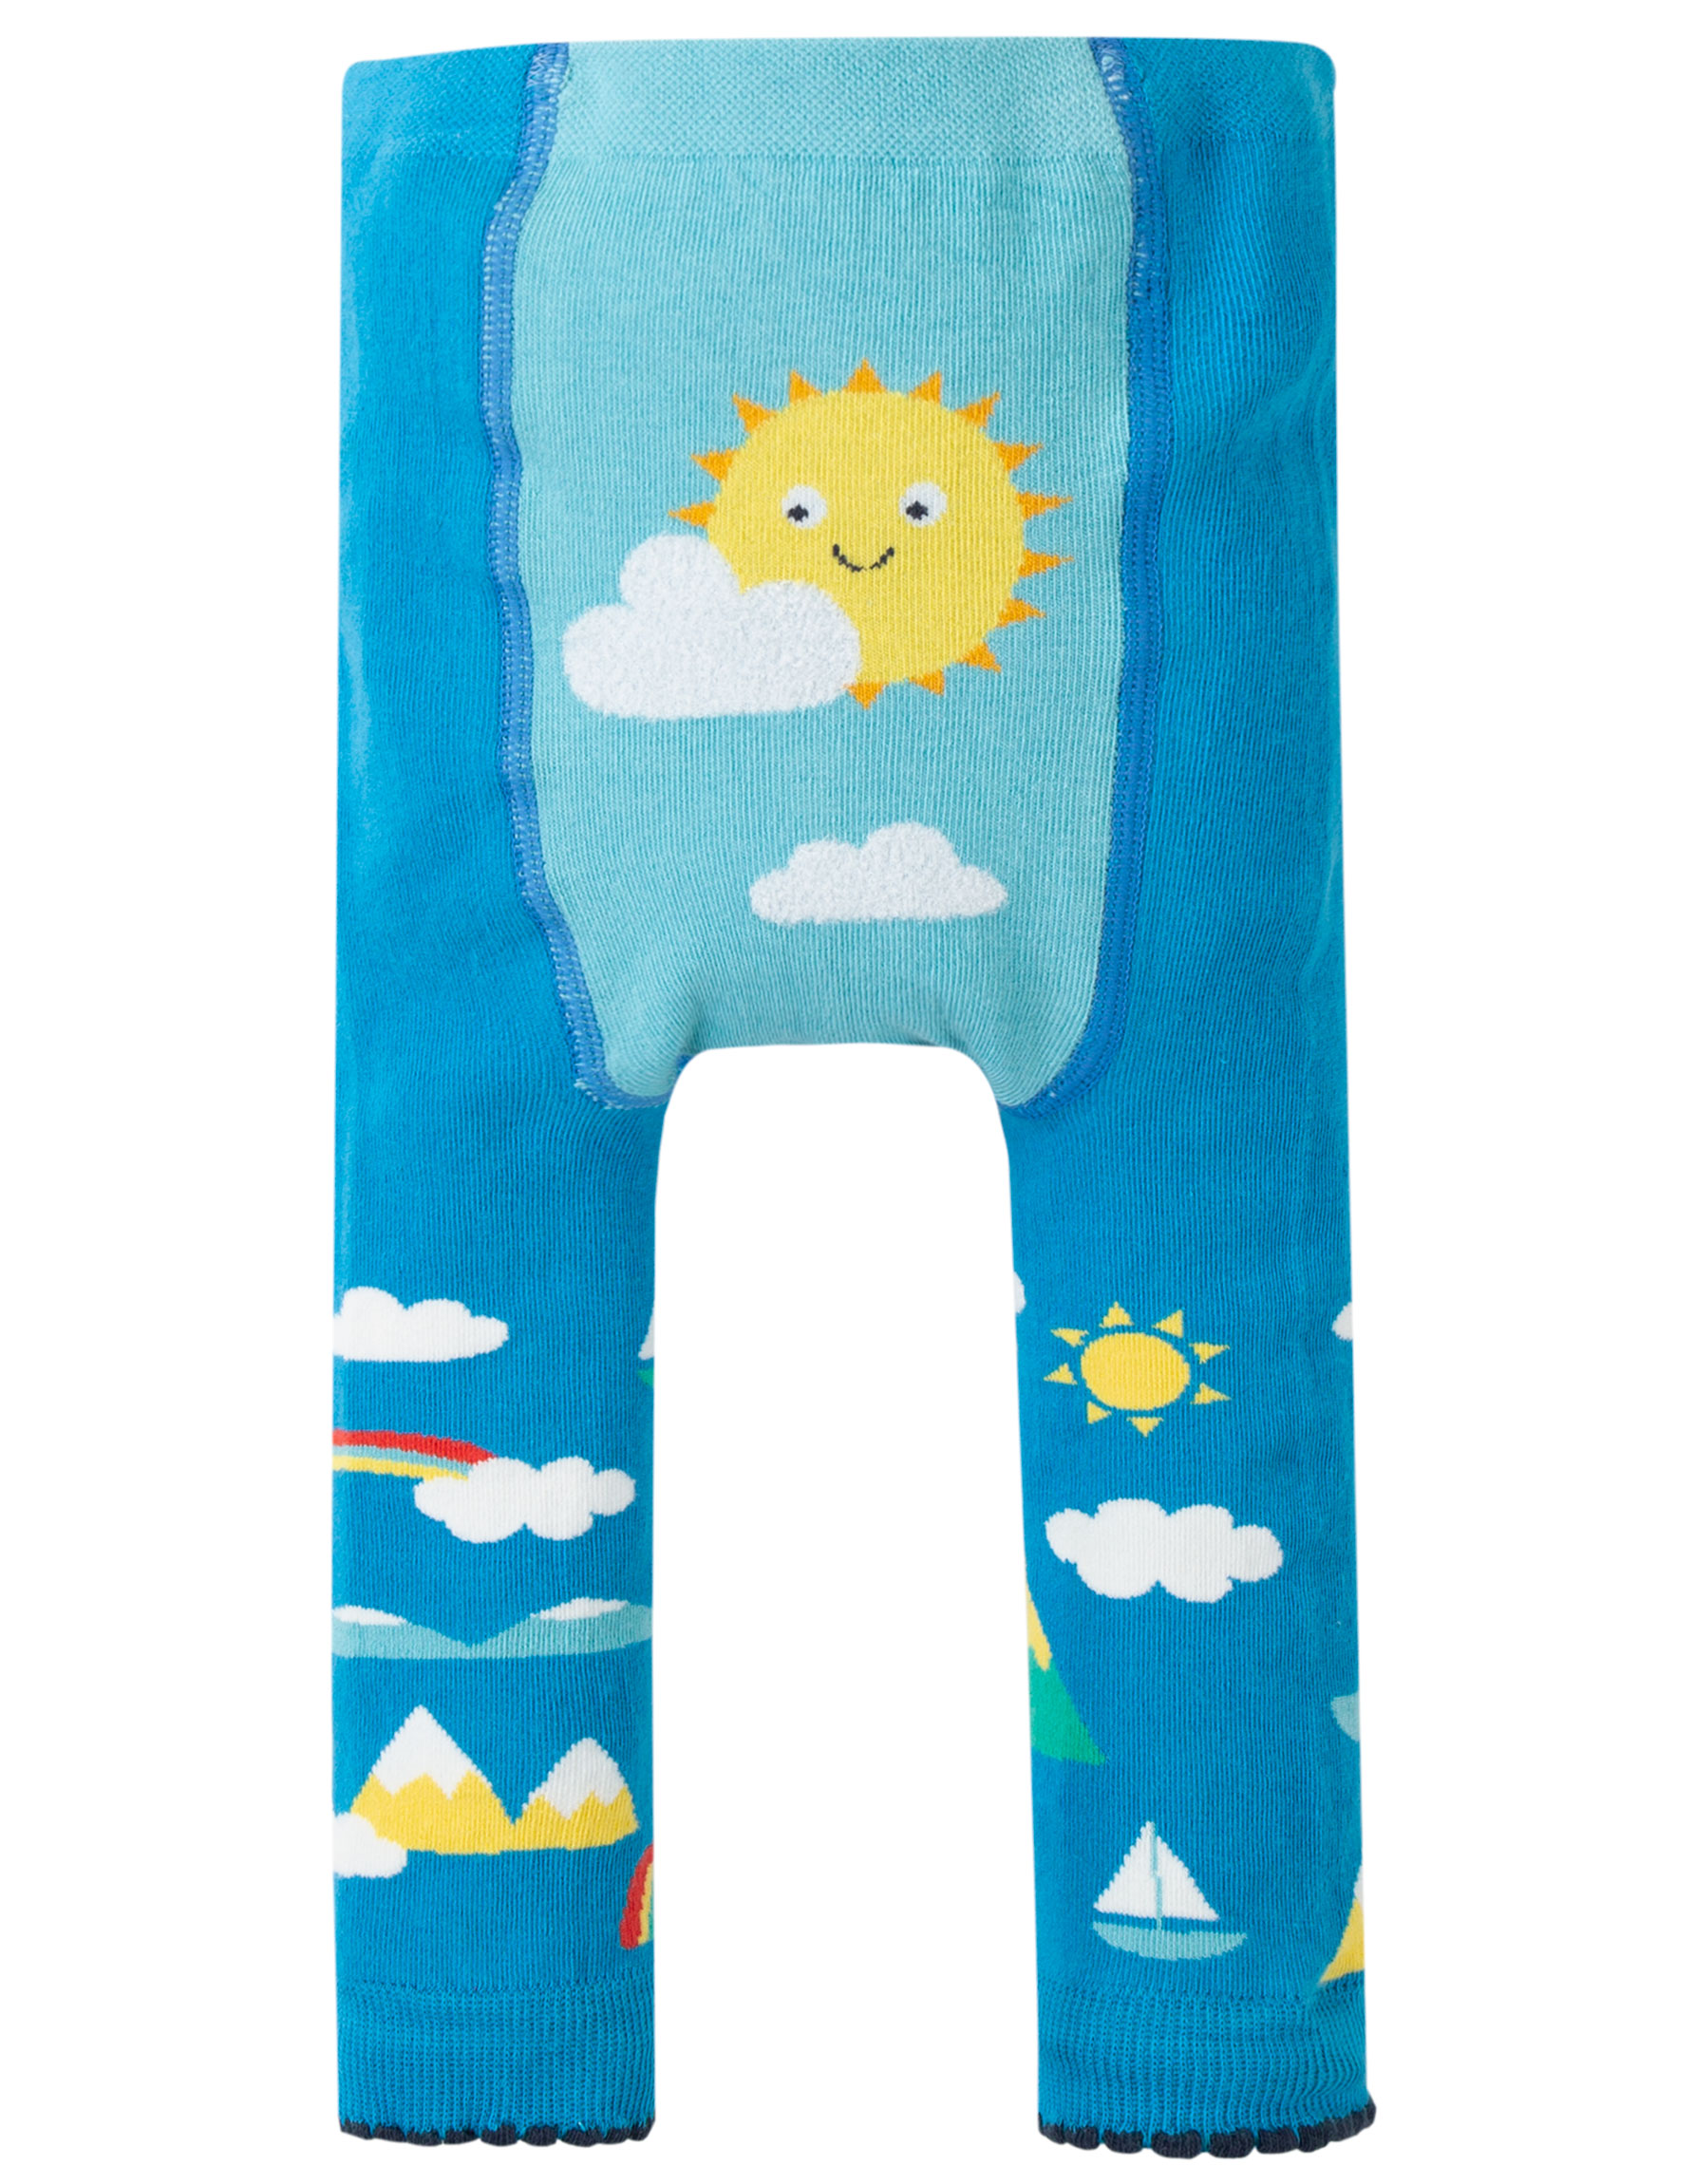 Frugi - Fun Kinitted leggings - Bright sky/sun